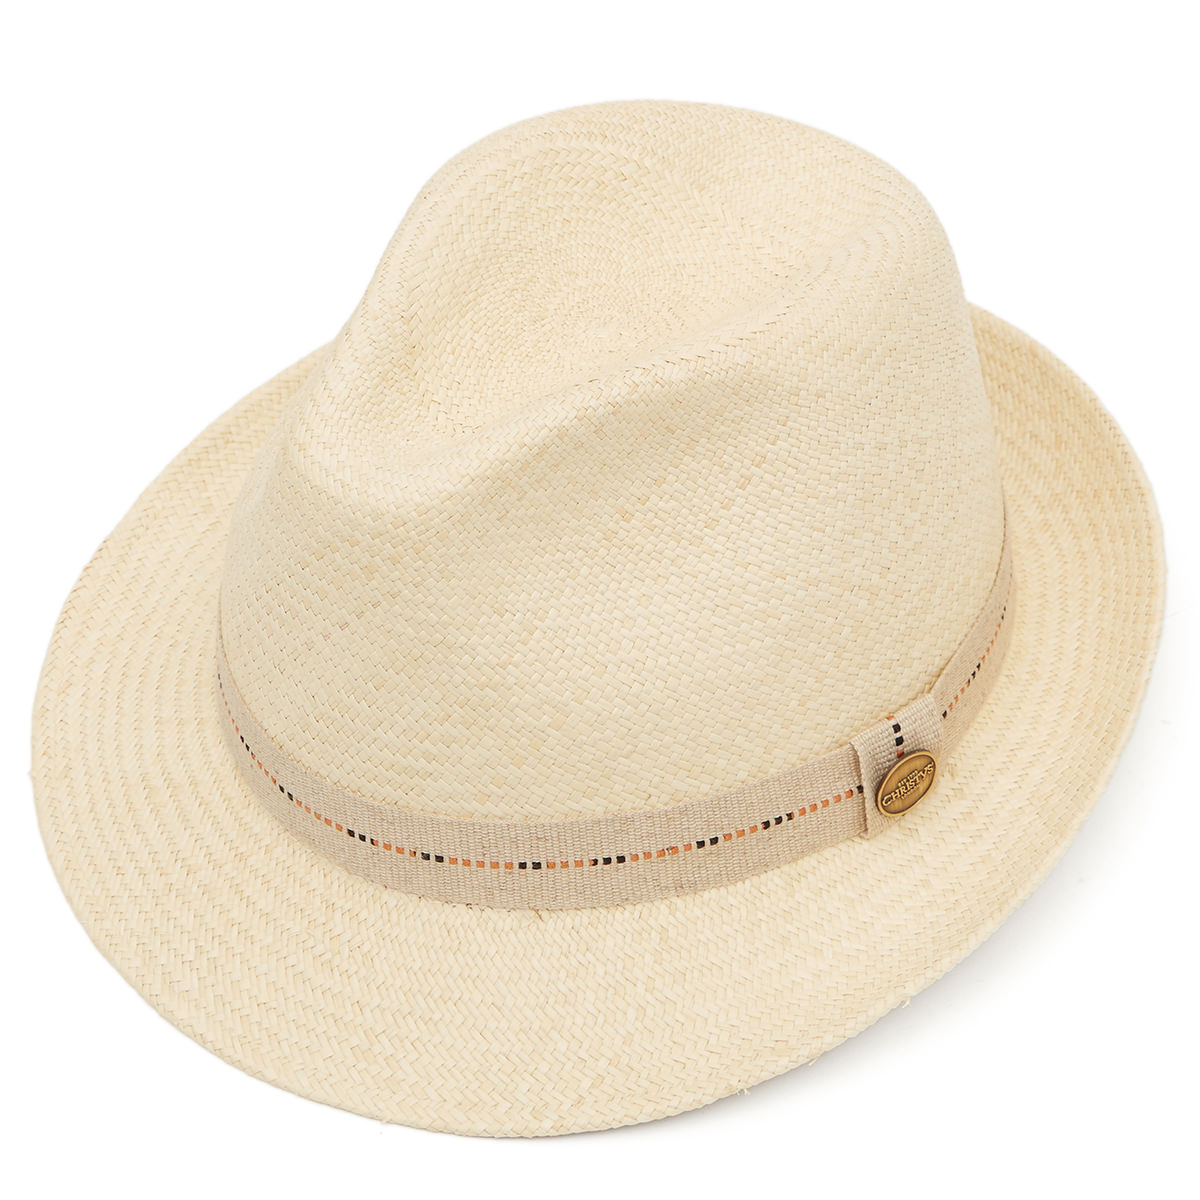 Cuenca Hardy Panama Hat - Semi - Bleached in M